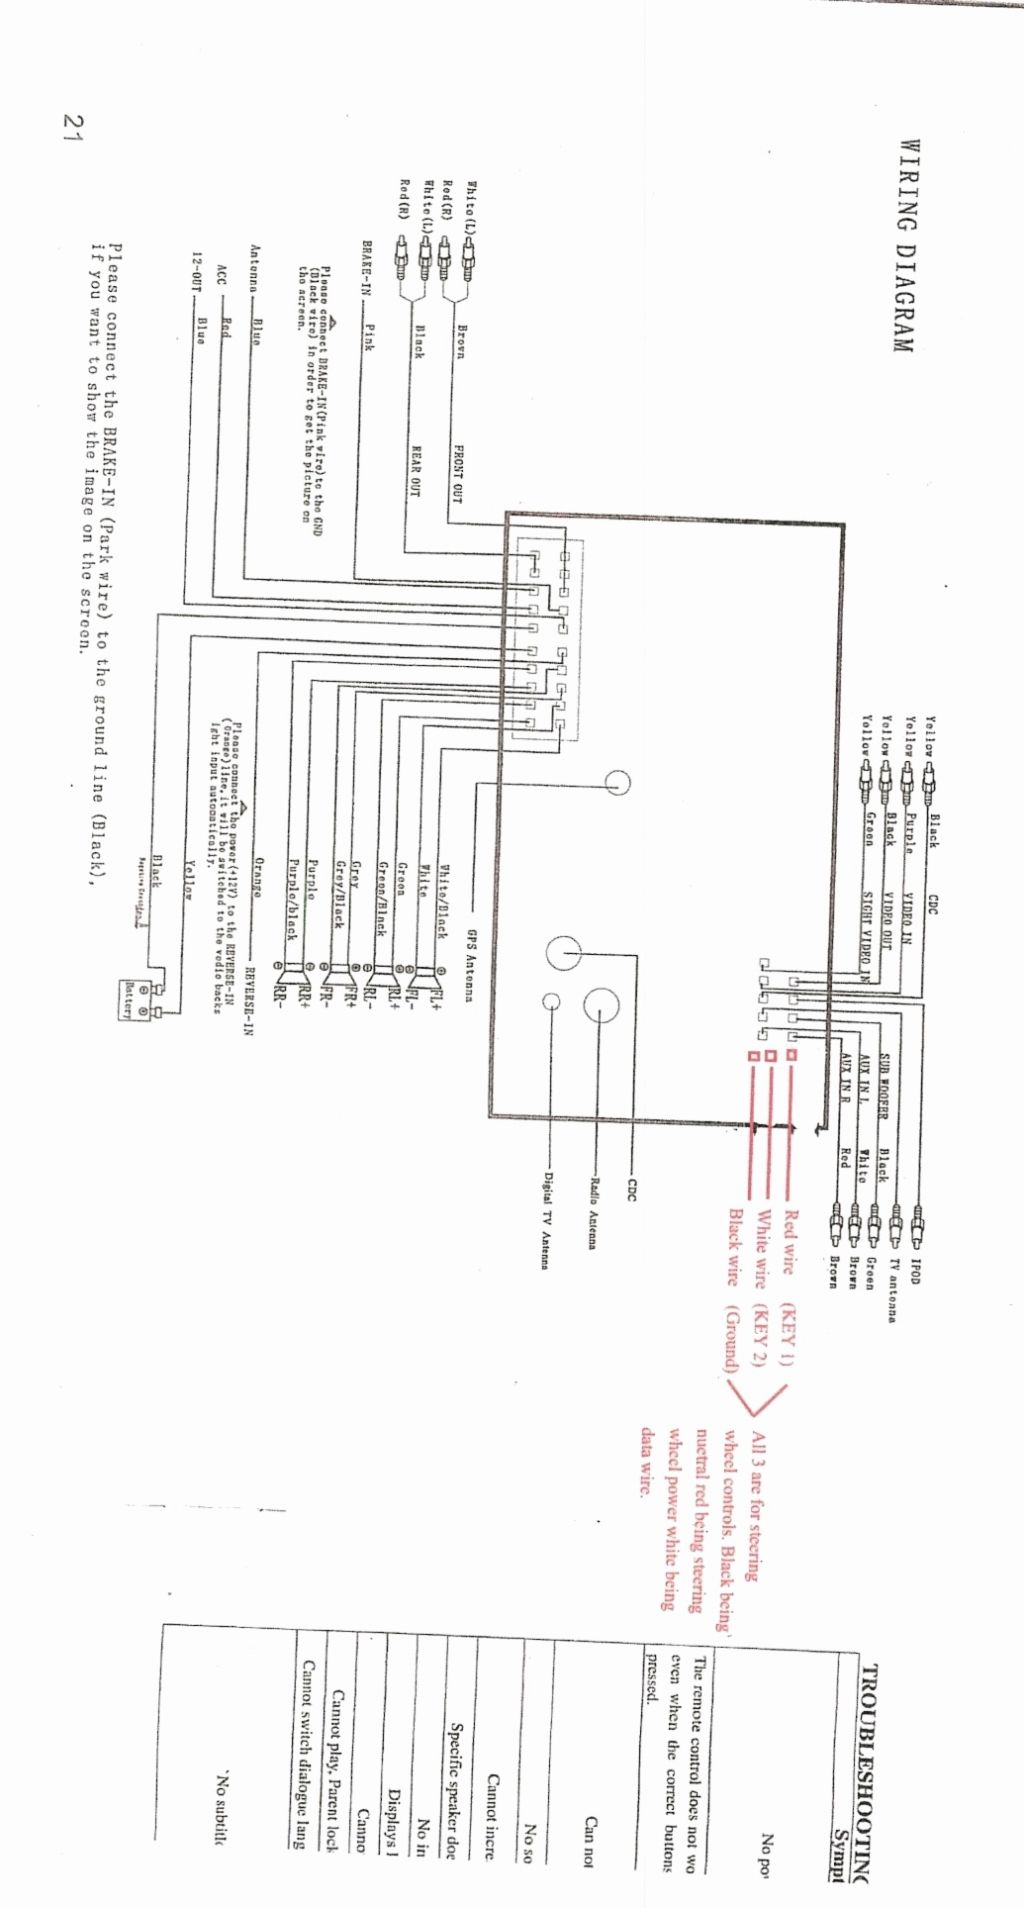 white rodgers 24a01g 3 wiring diagram Download-Axxess Steering Wheel Control Interface Wiring Diagram Download White rodgers 24a01g 3 wiring diagram 11-e